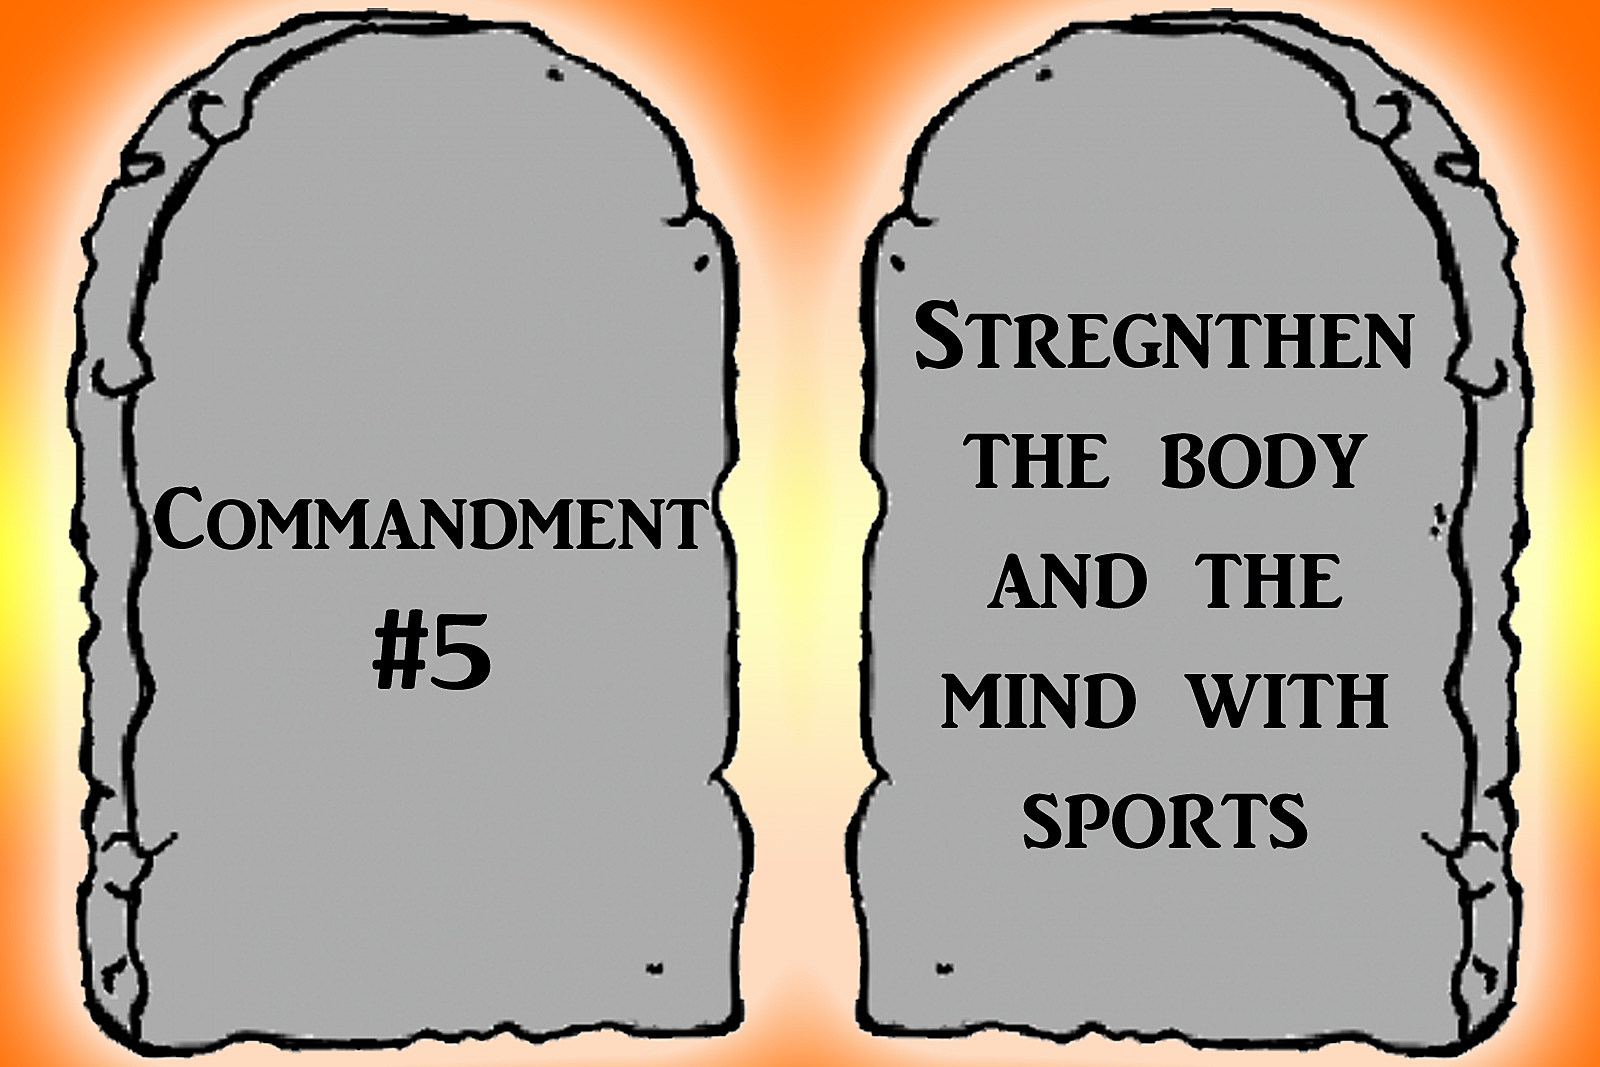 Commandment 5